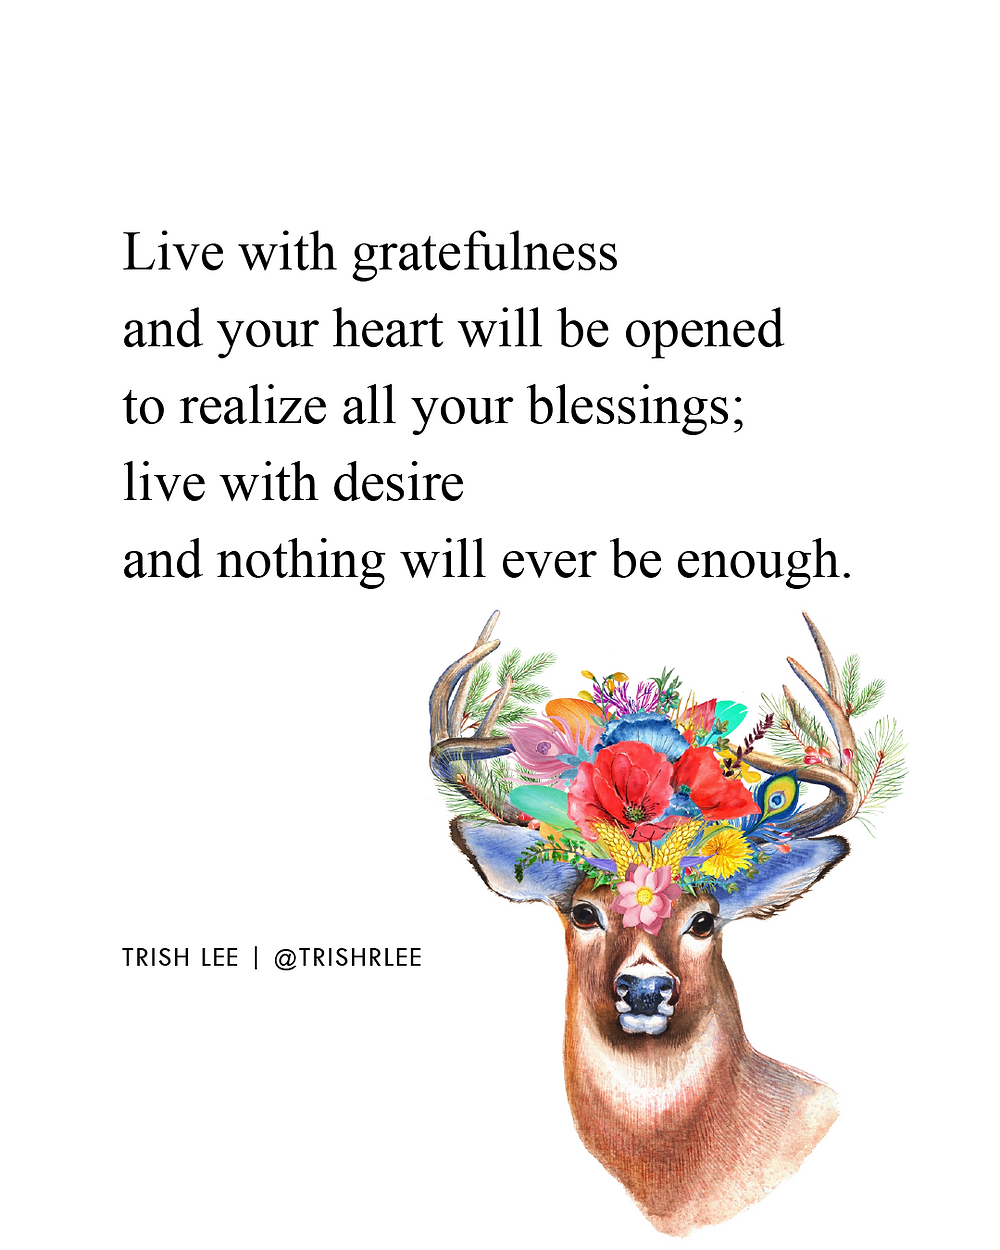 live with gratefulness and your heart will be opened to realize all your blessings